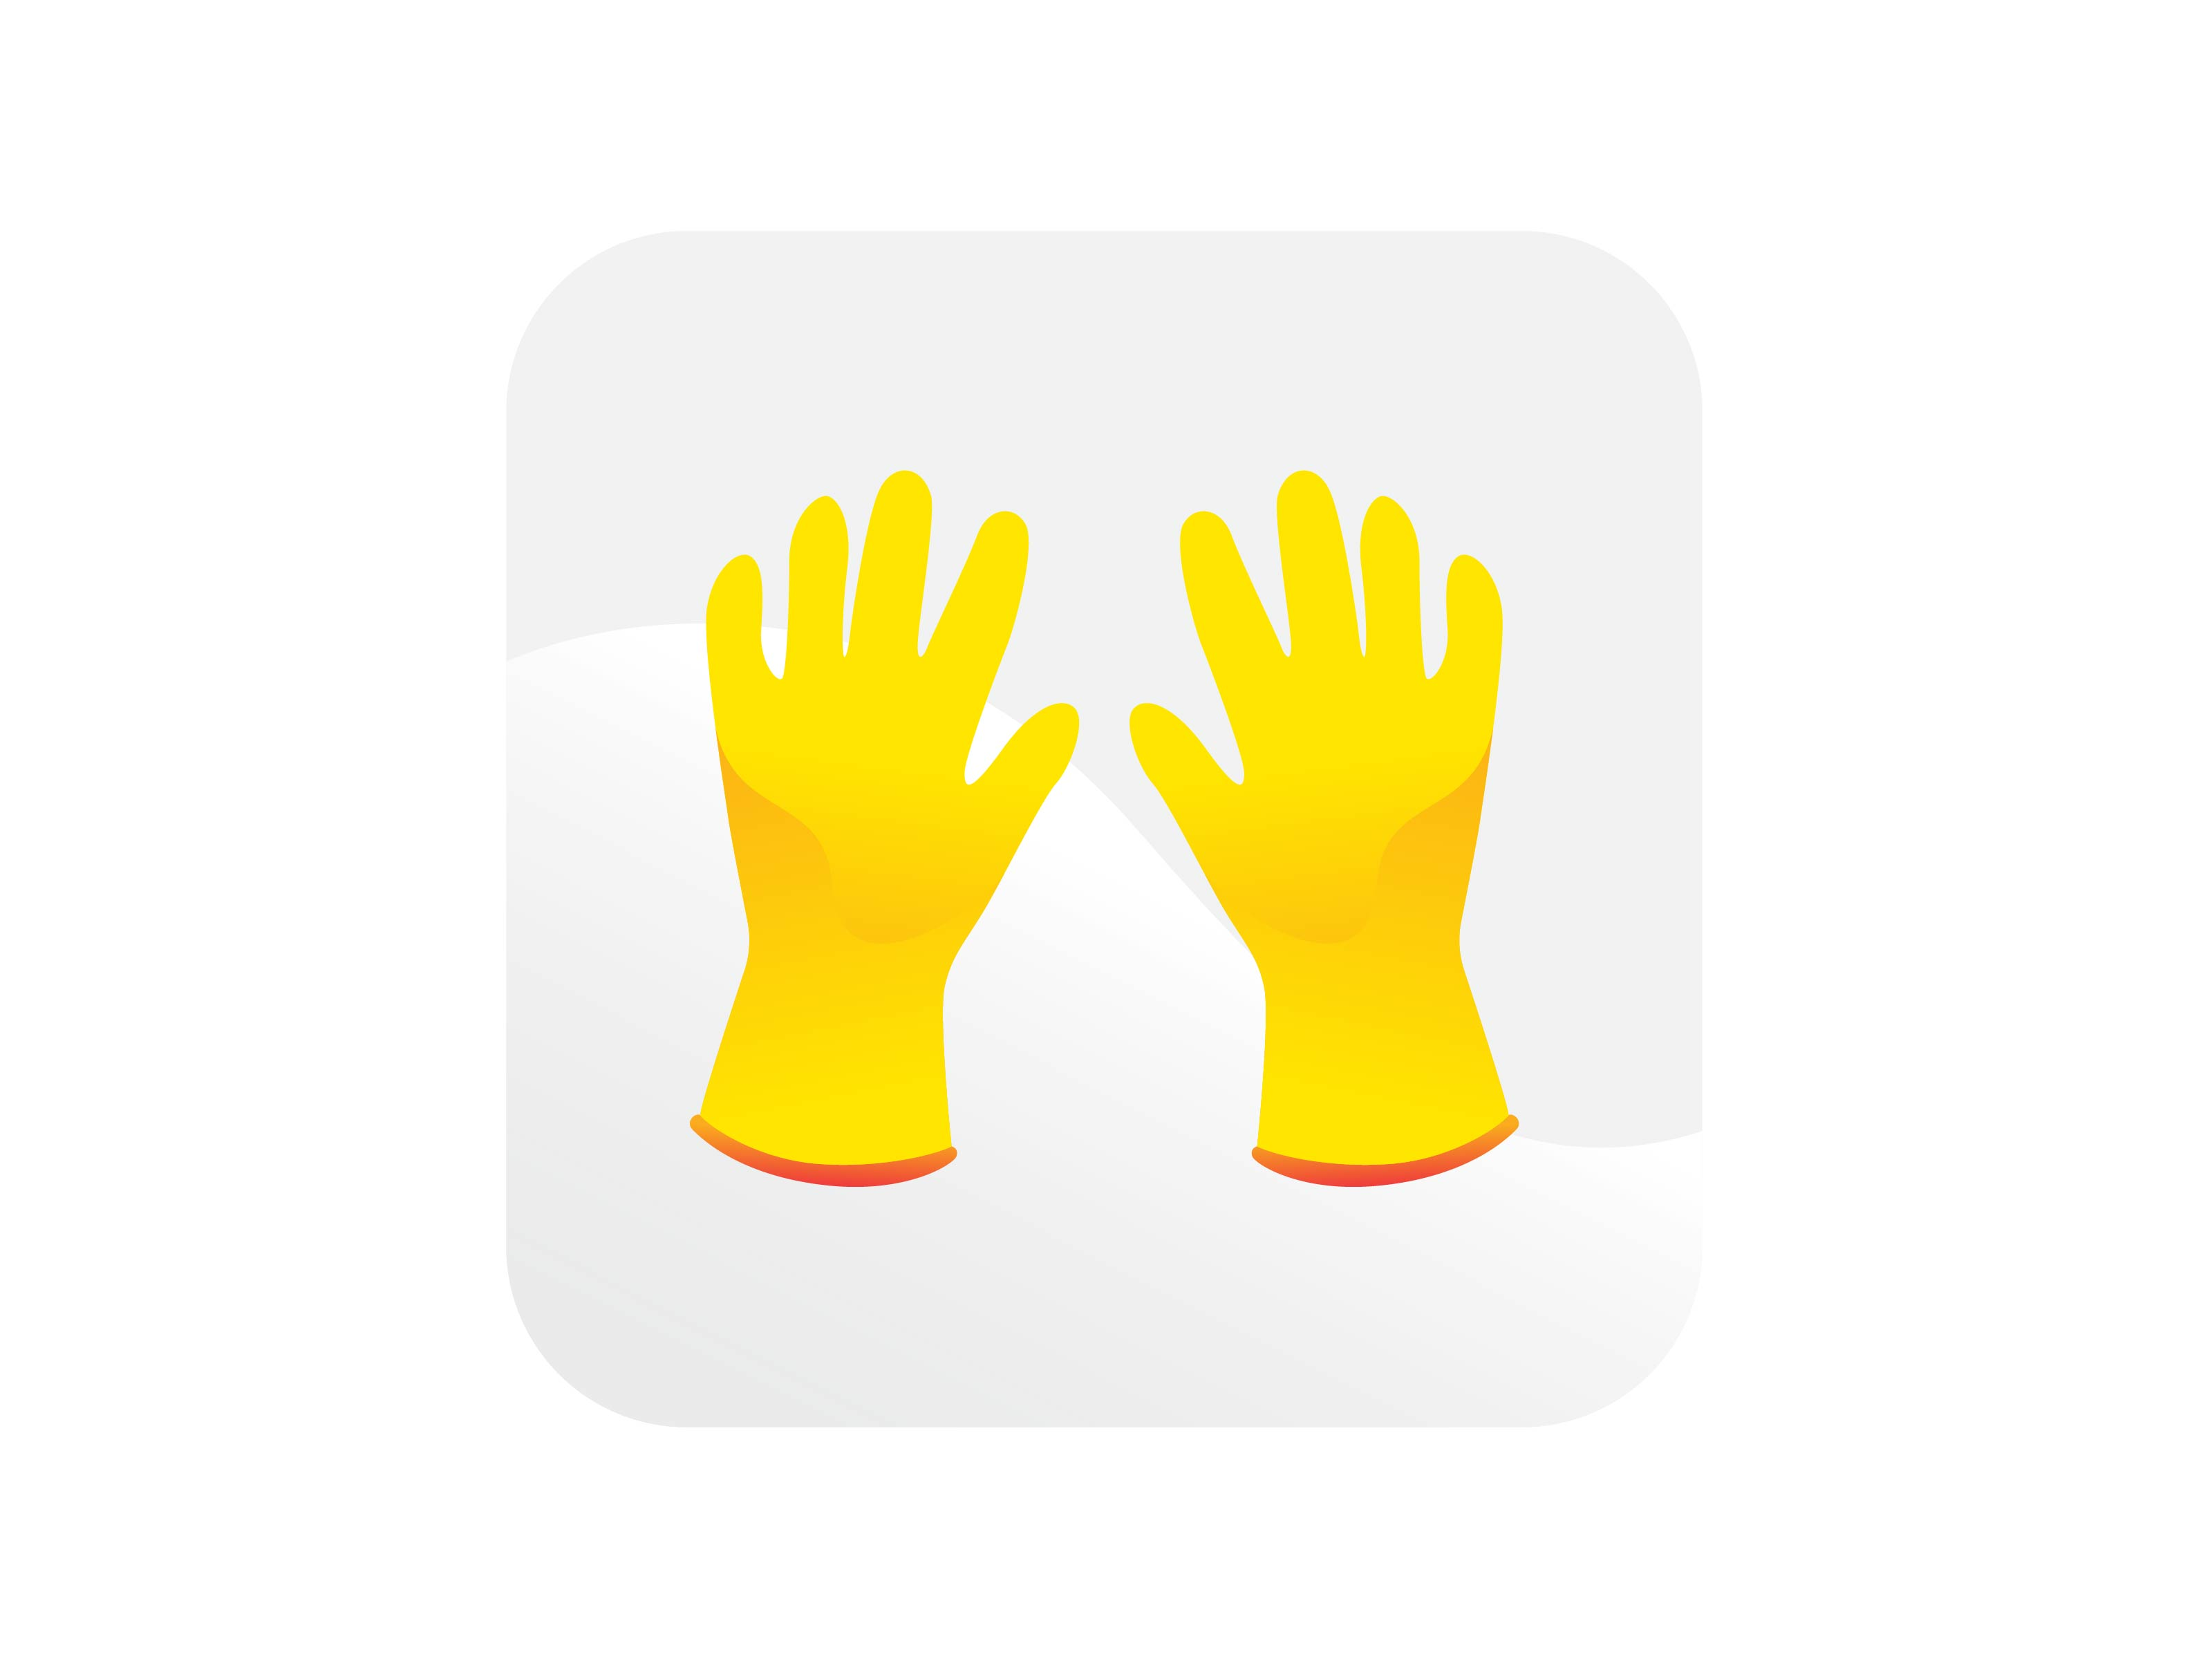 Download Free Gloves Icon Graphic By Samagata Creative Fabrica for Cricut Explore, Silhouette and other cutting machines.